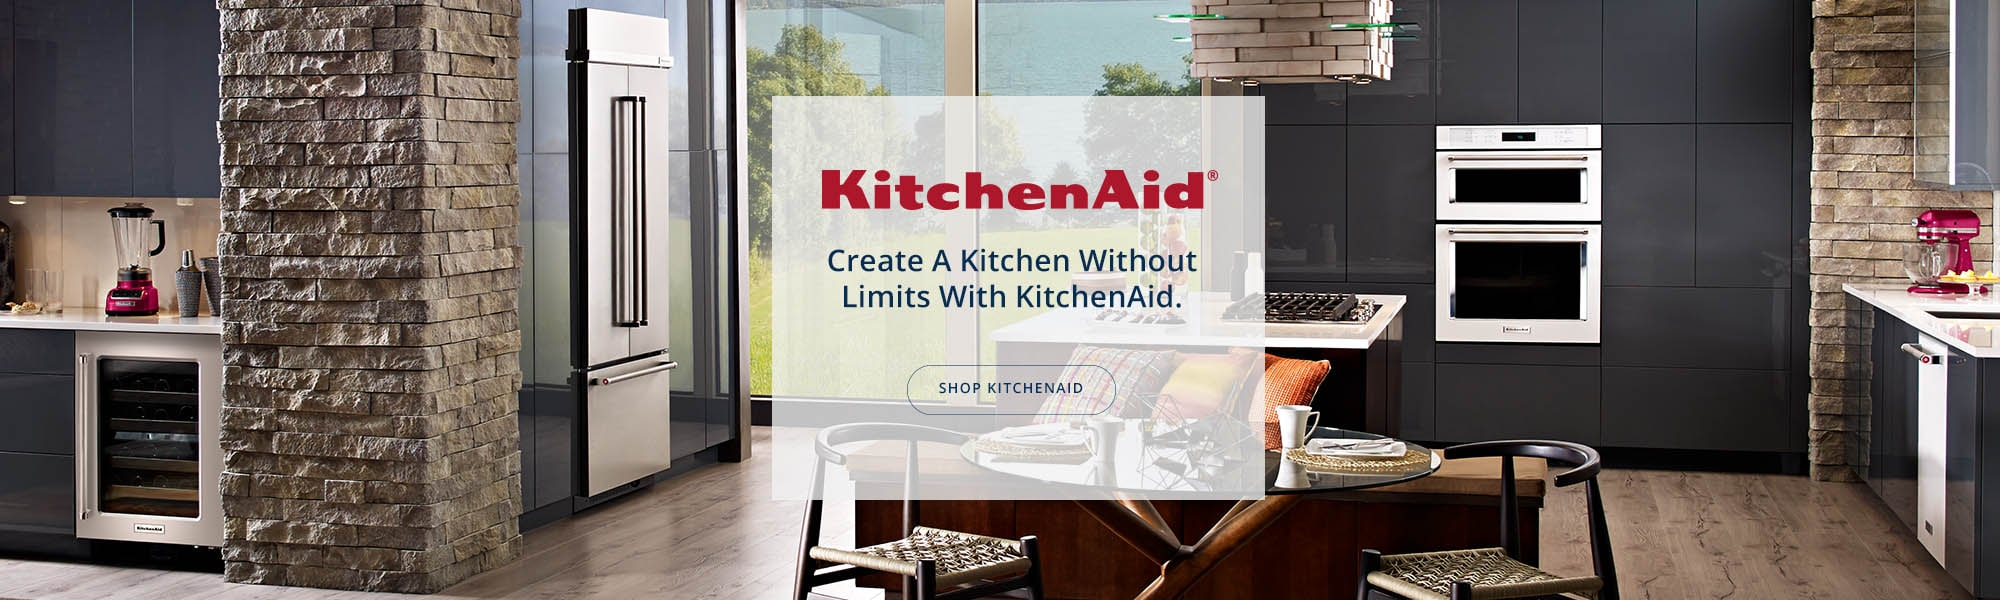 KitchinAid appliances